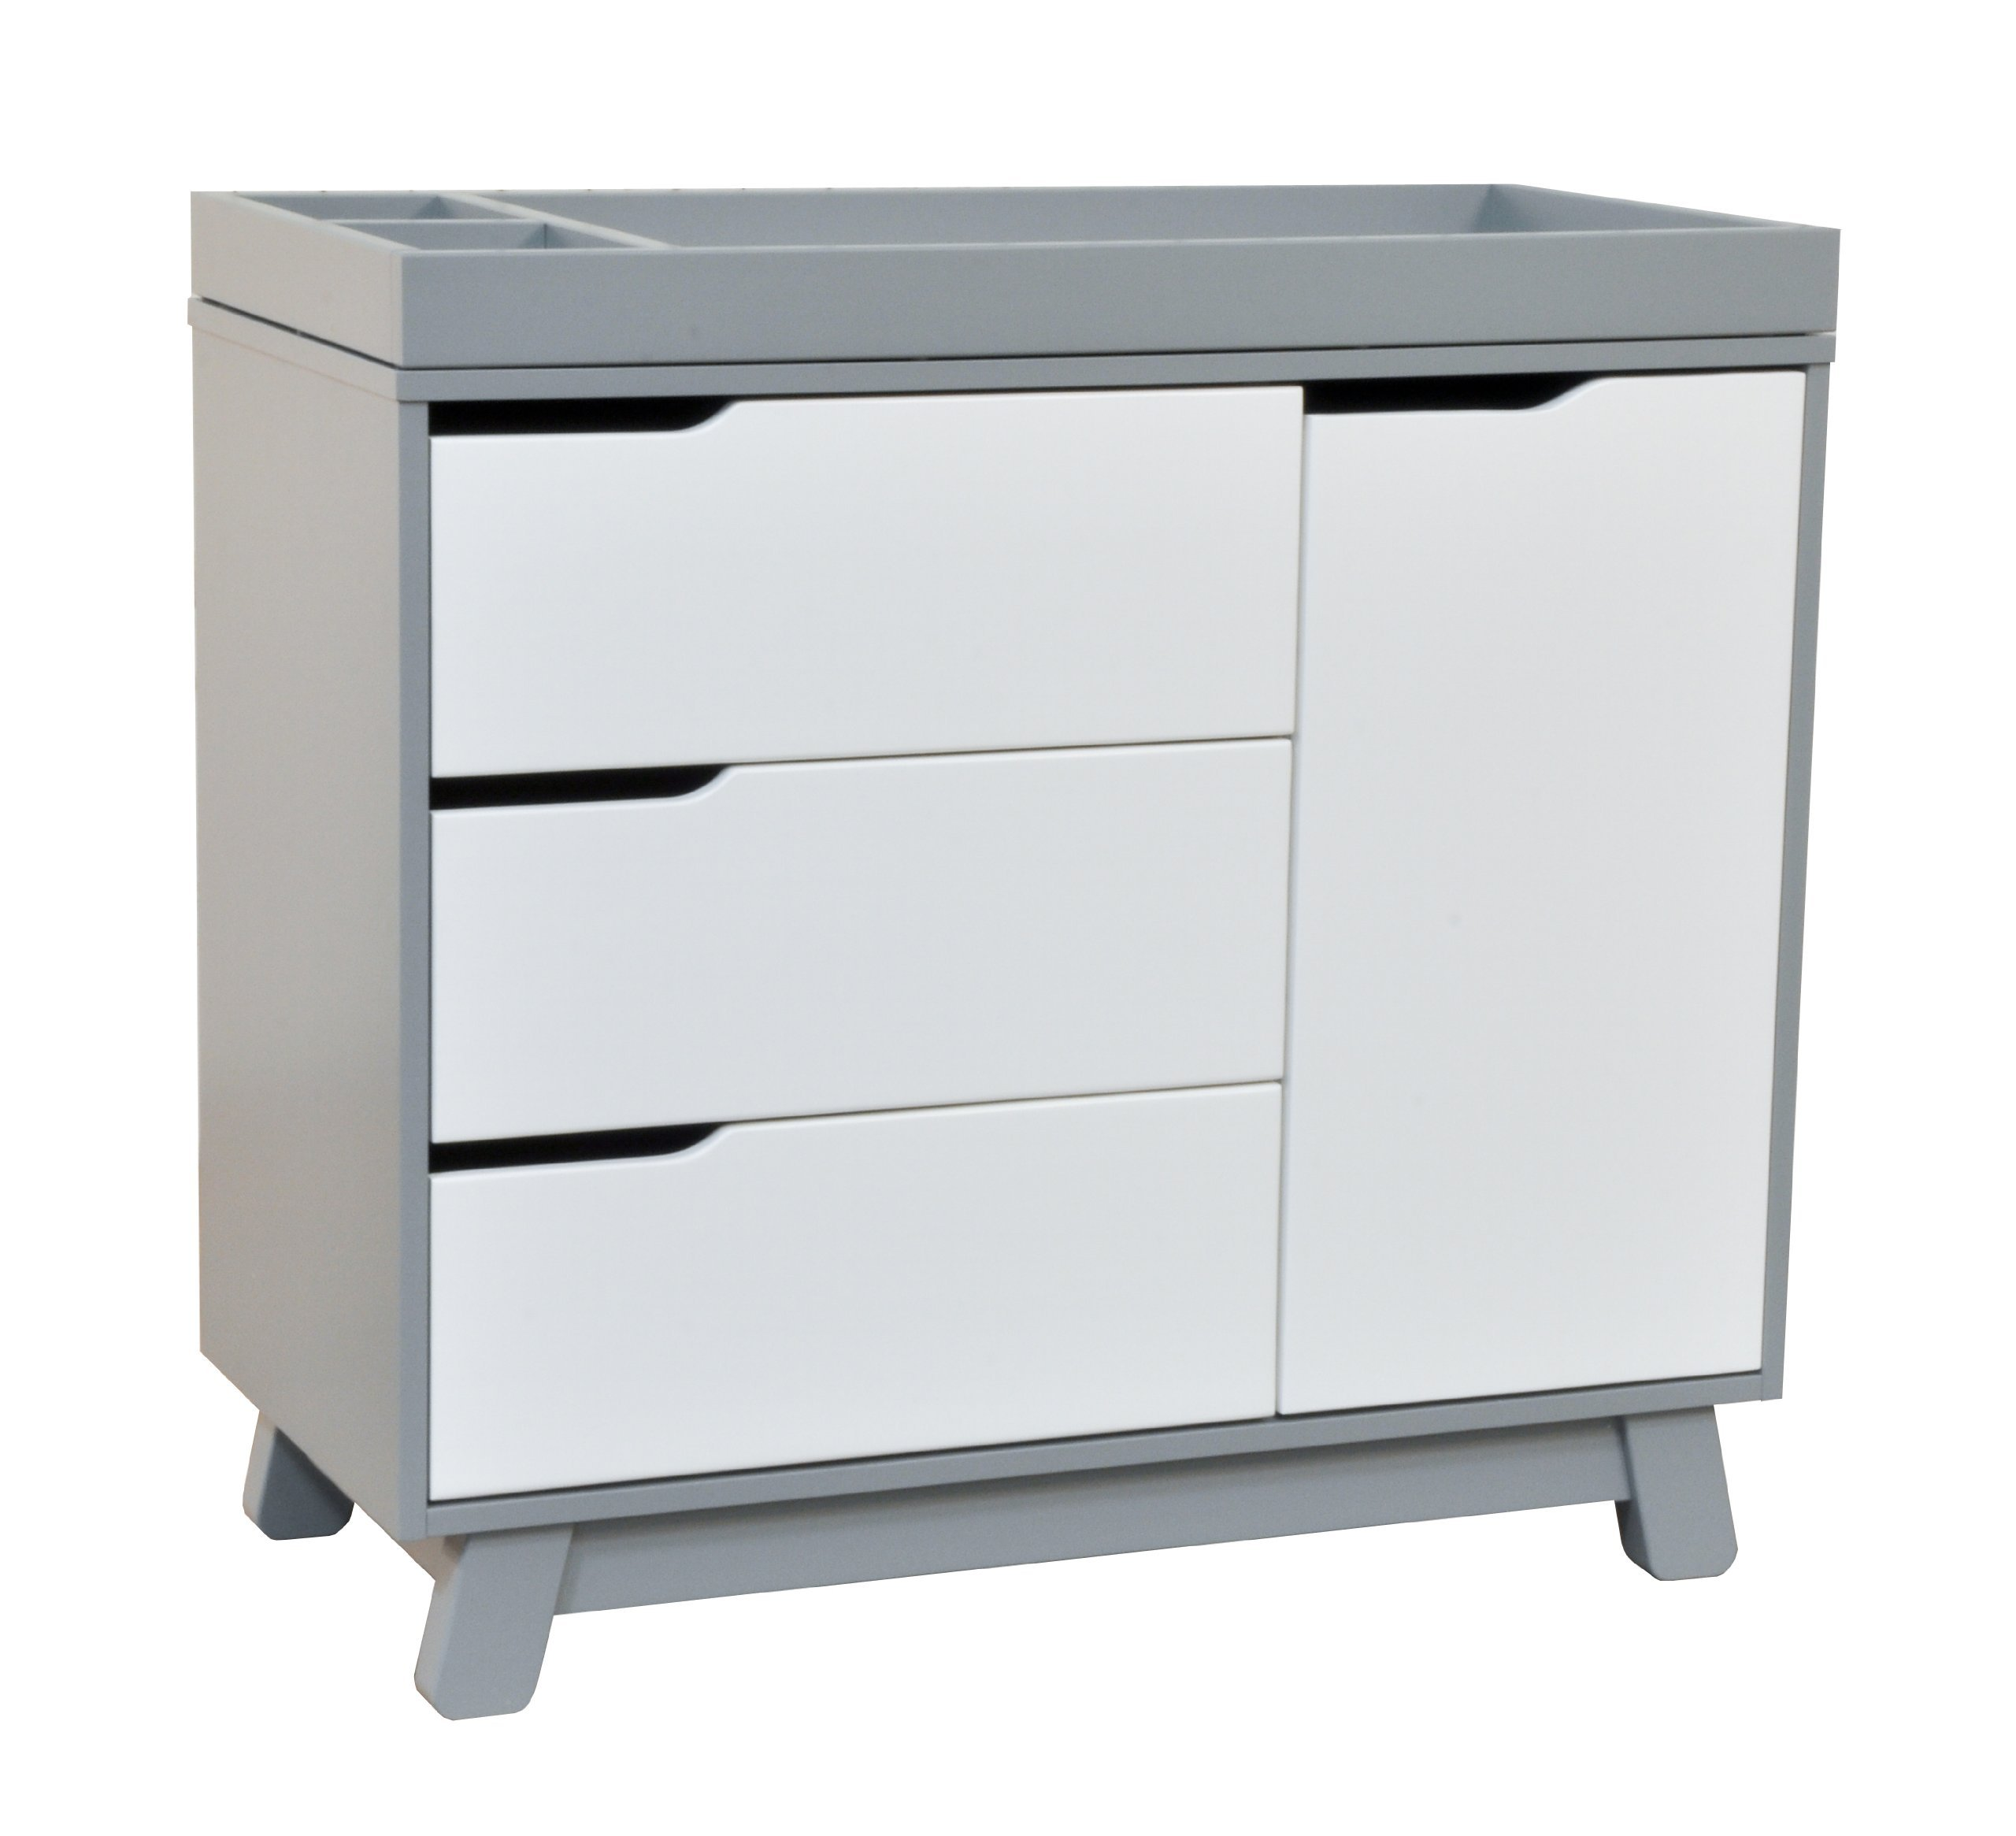 Babyletto Hudson 3-Drawer Changer Dresser with Removable Changing Tray, Grey / White by babyletto